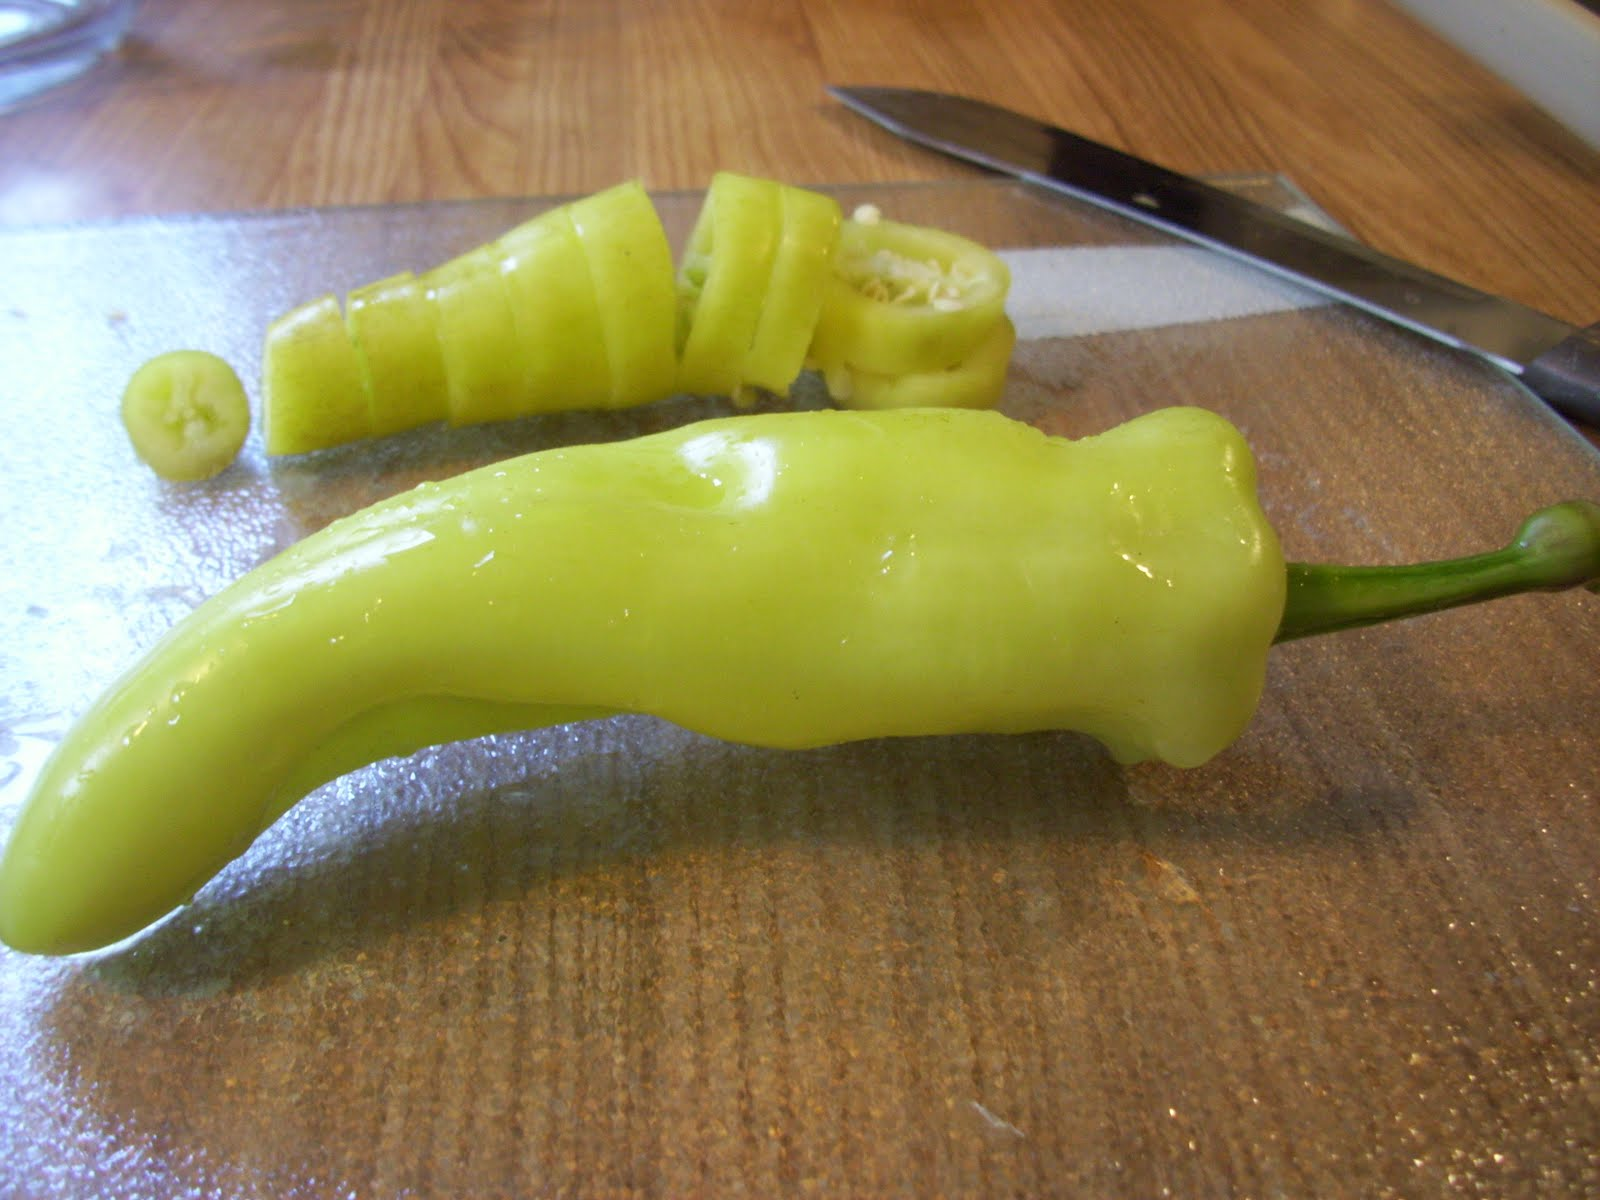 ... them. The easiest way to preserve hot peppers is by pickling them